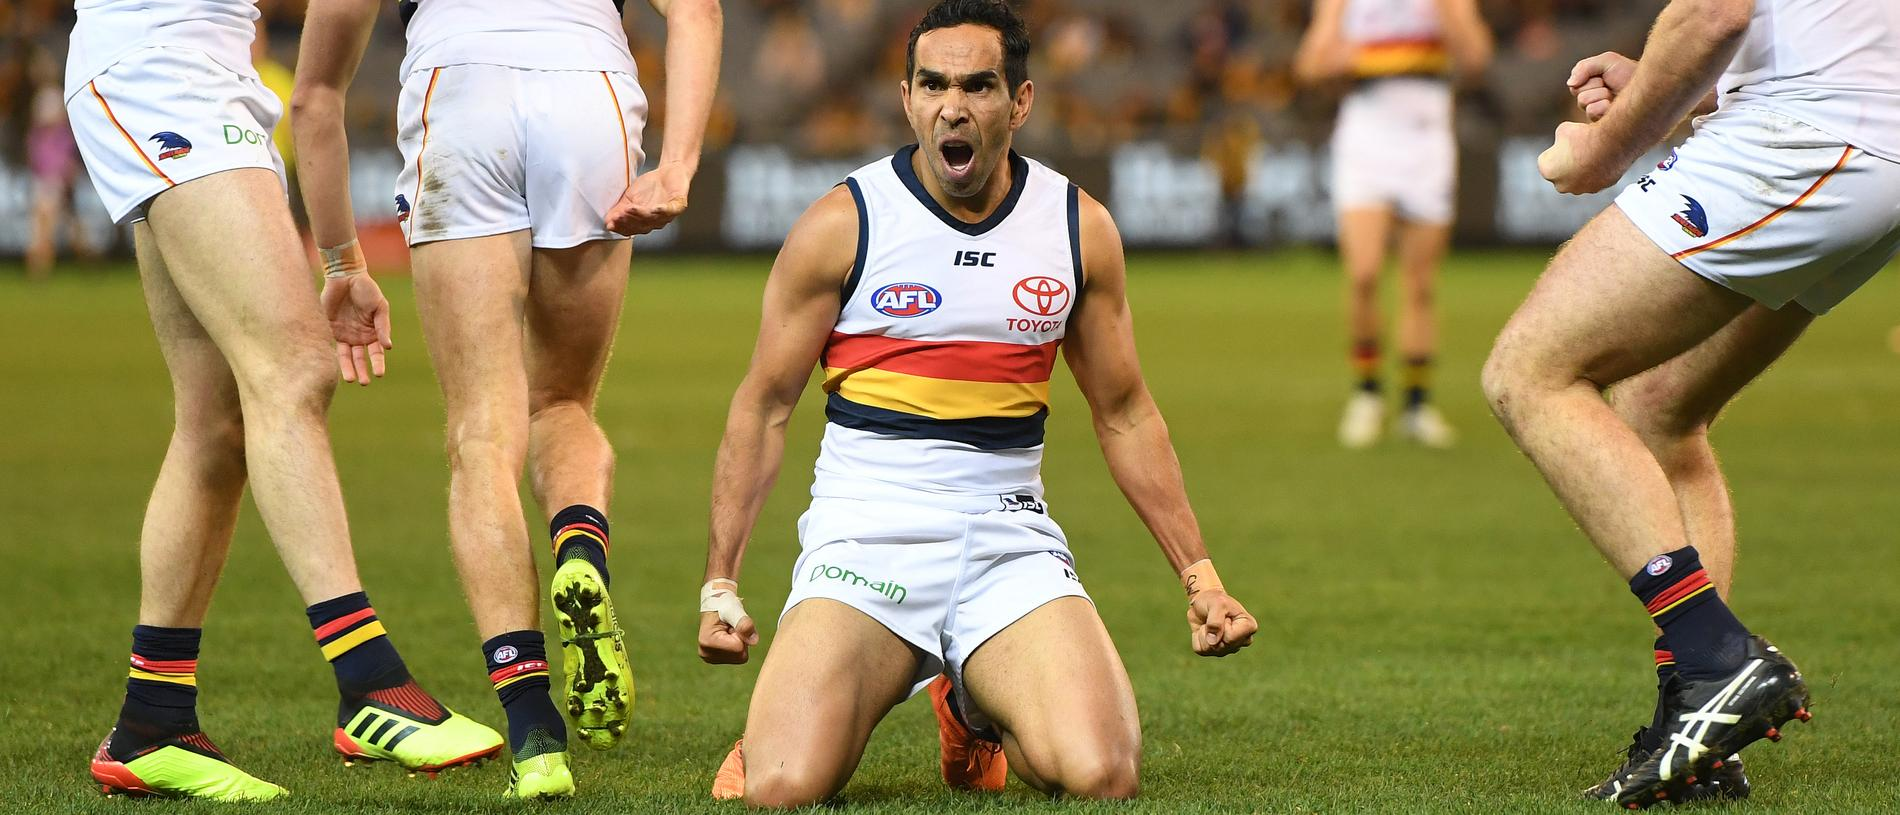 Eddie Betts of the Crows (third from left) reacts after kicking a goal during the Round 13 AFL match between the Hawthorn Hawks and the Adelaide Crows at the MCG in Melbourne, Saturday, June 16, 2018. (AAP Image/Julian Smith) NO ARCHIVING, EDITORIAL USE ONLY